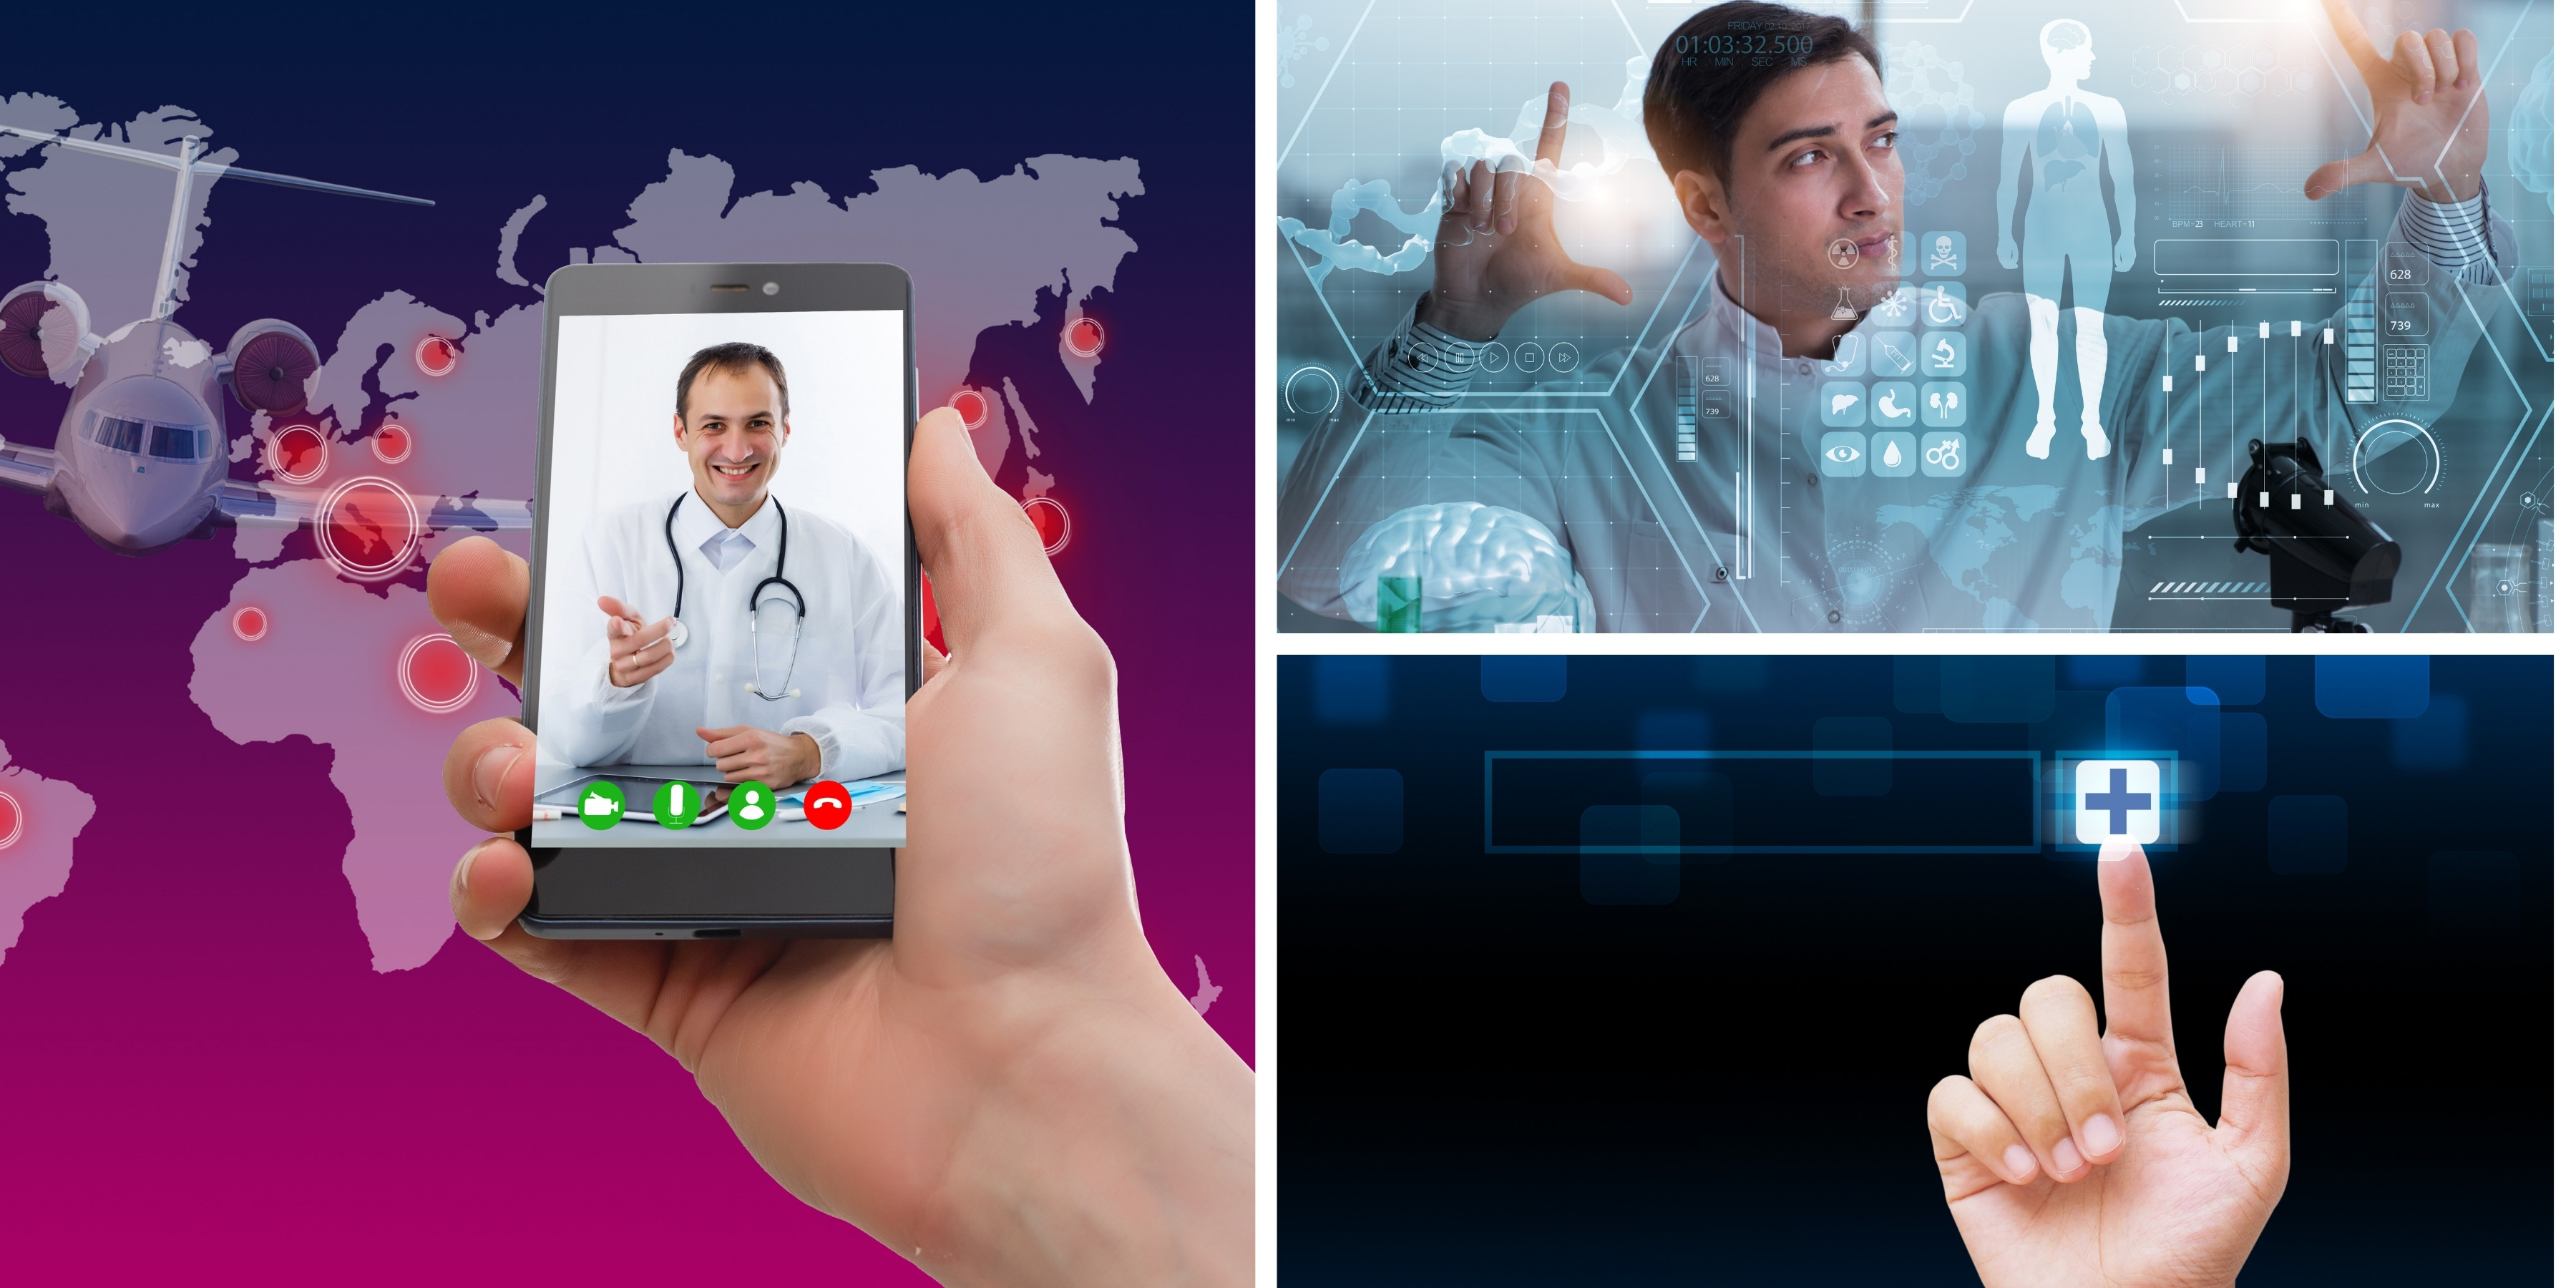 Annual Congress & Expo on Telemedicine, Digital Healthcare & Informatics